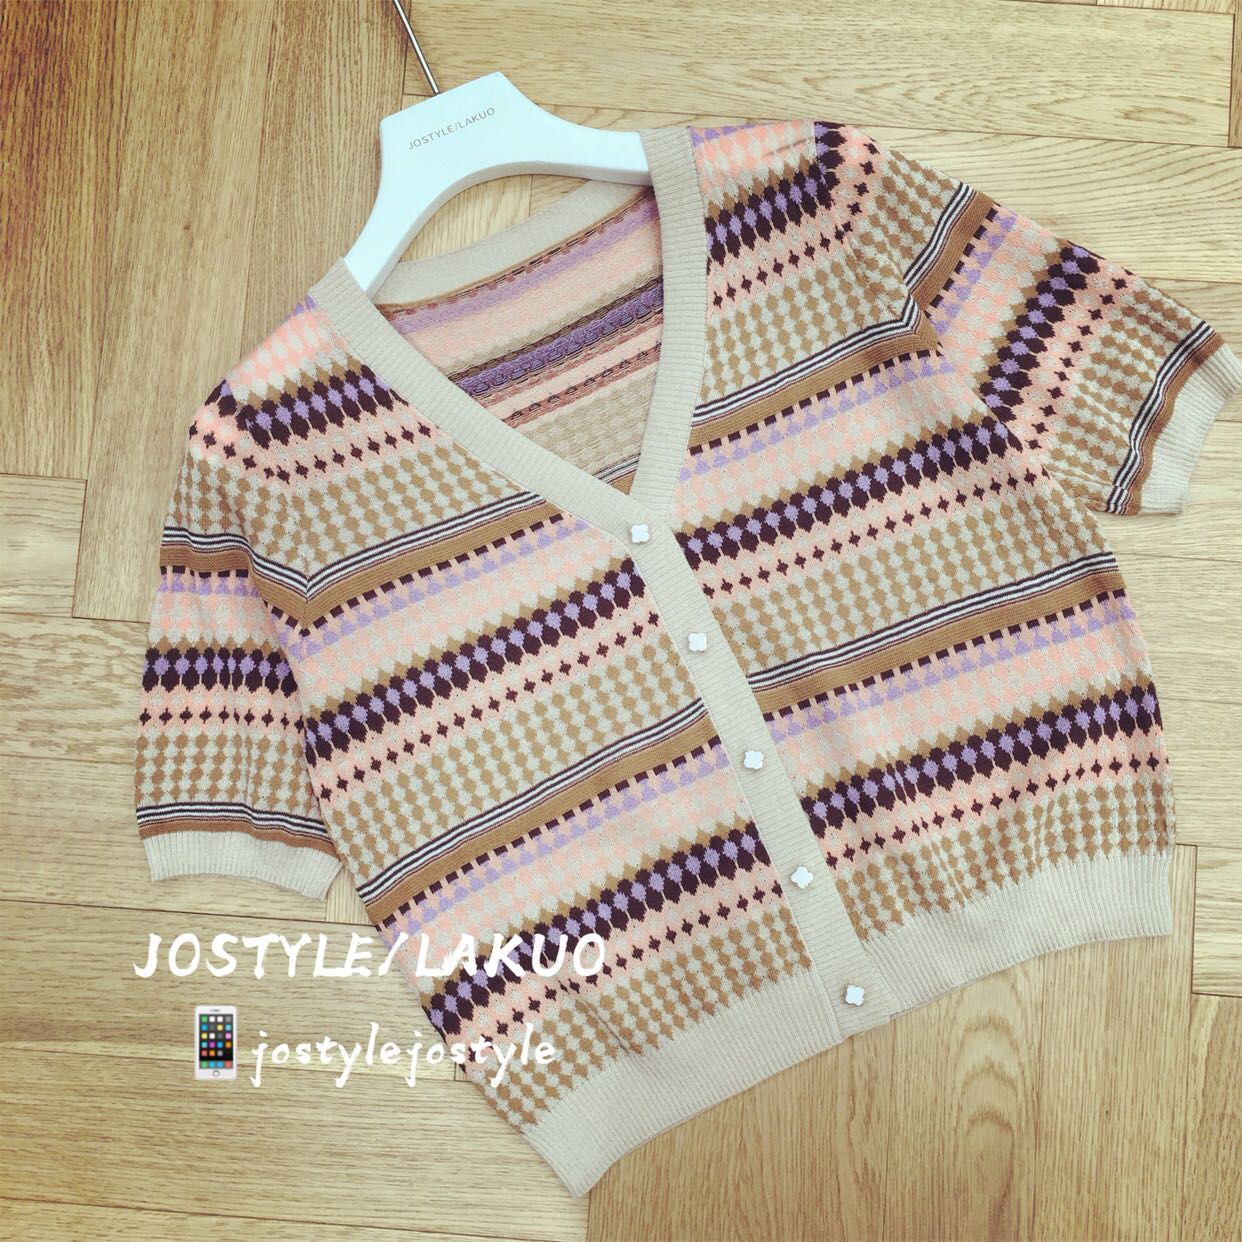 Jostyle foreign style store spring / summer 2020 New South Korea order super brand diamond check ice silk knitwear